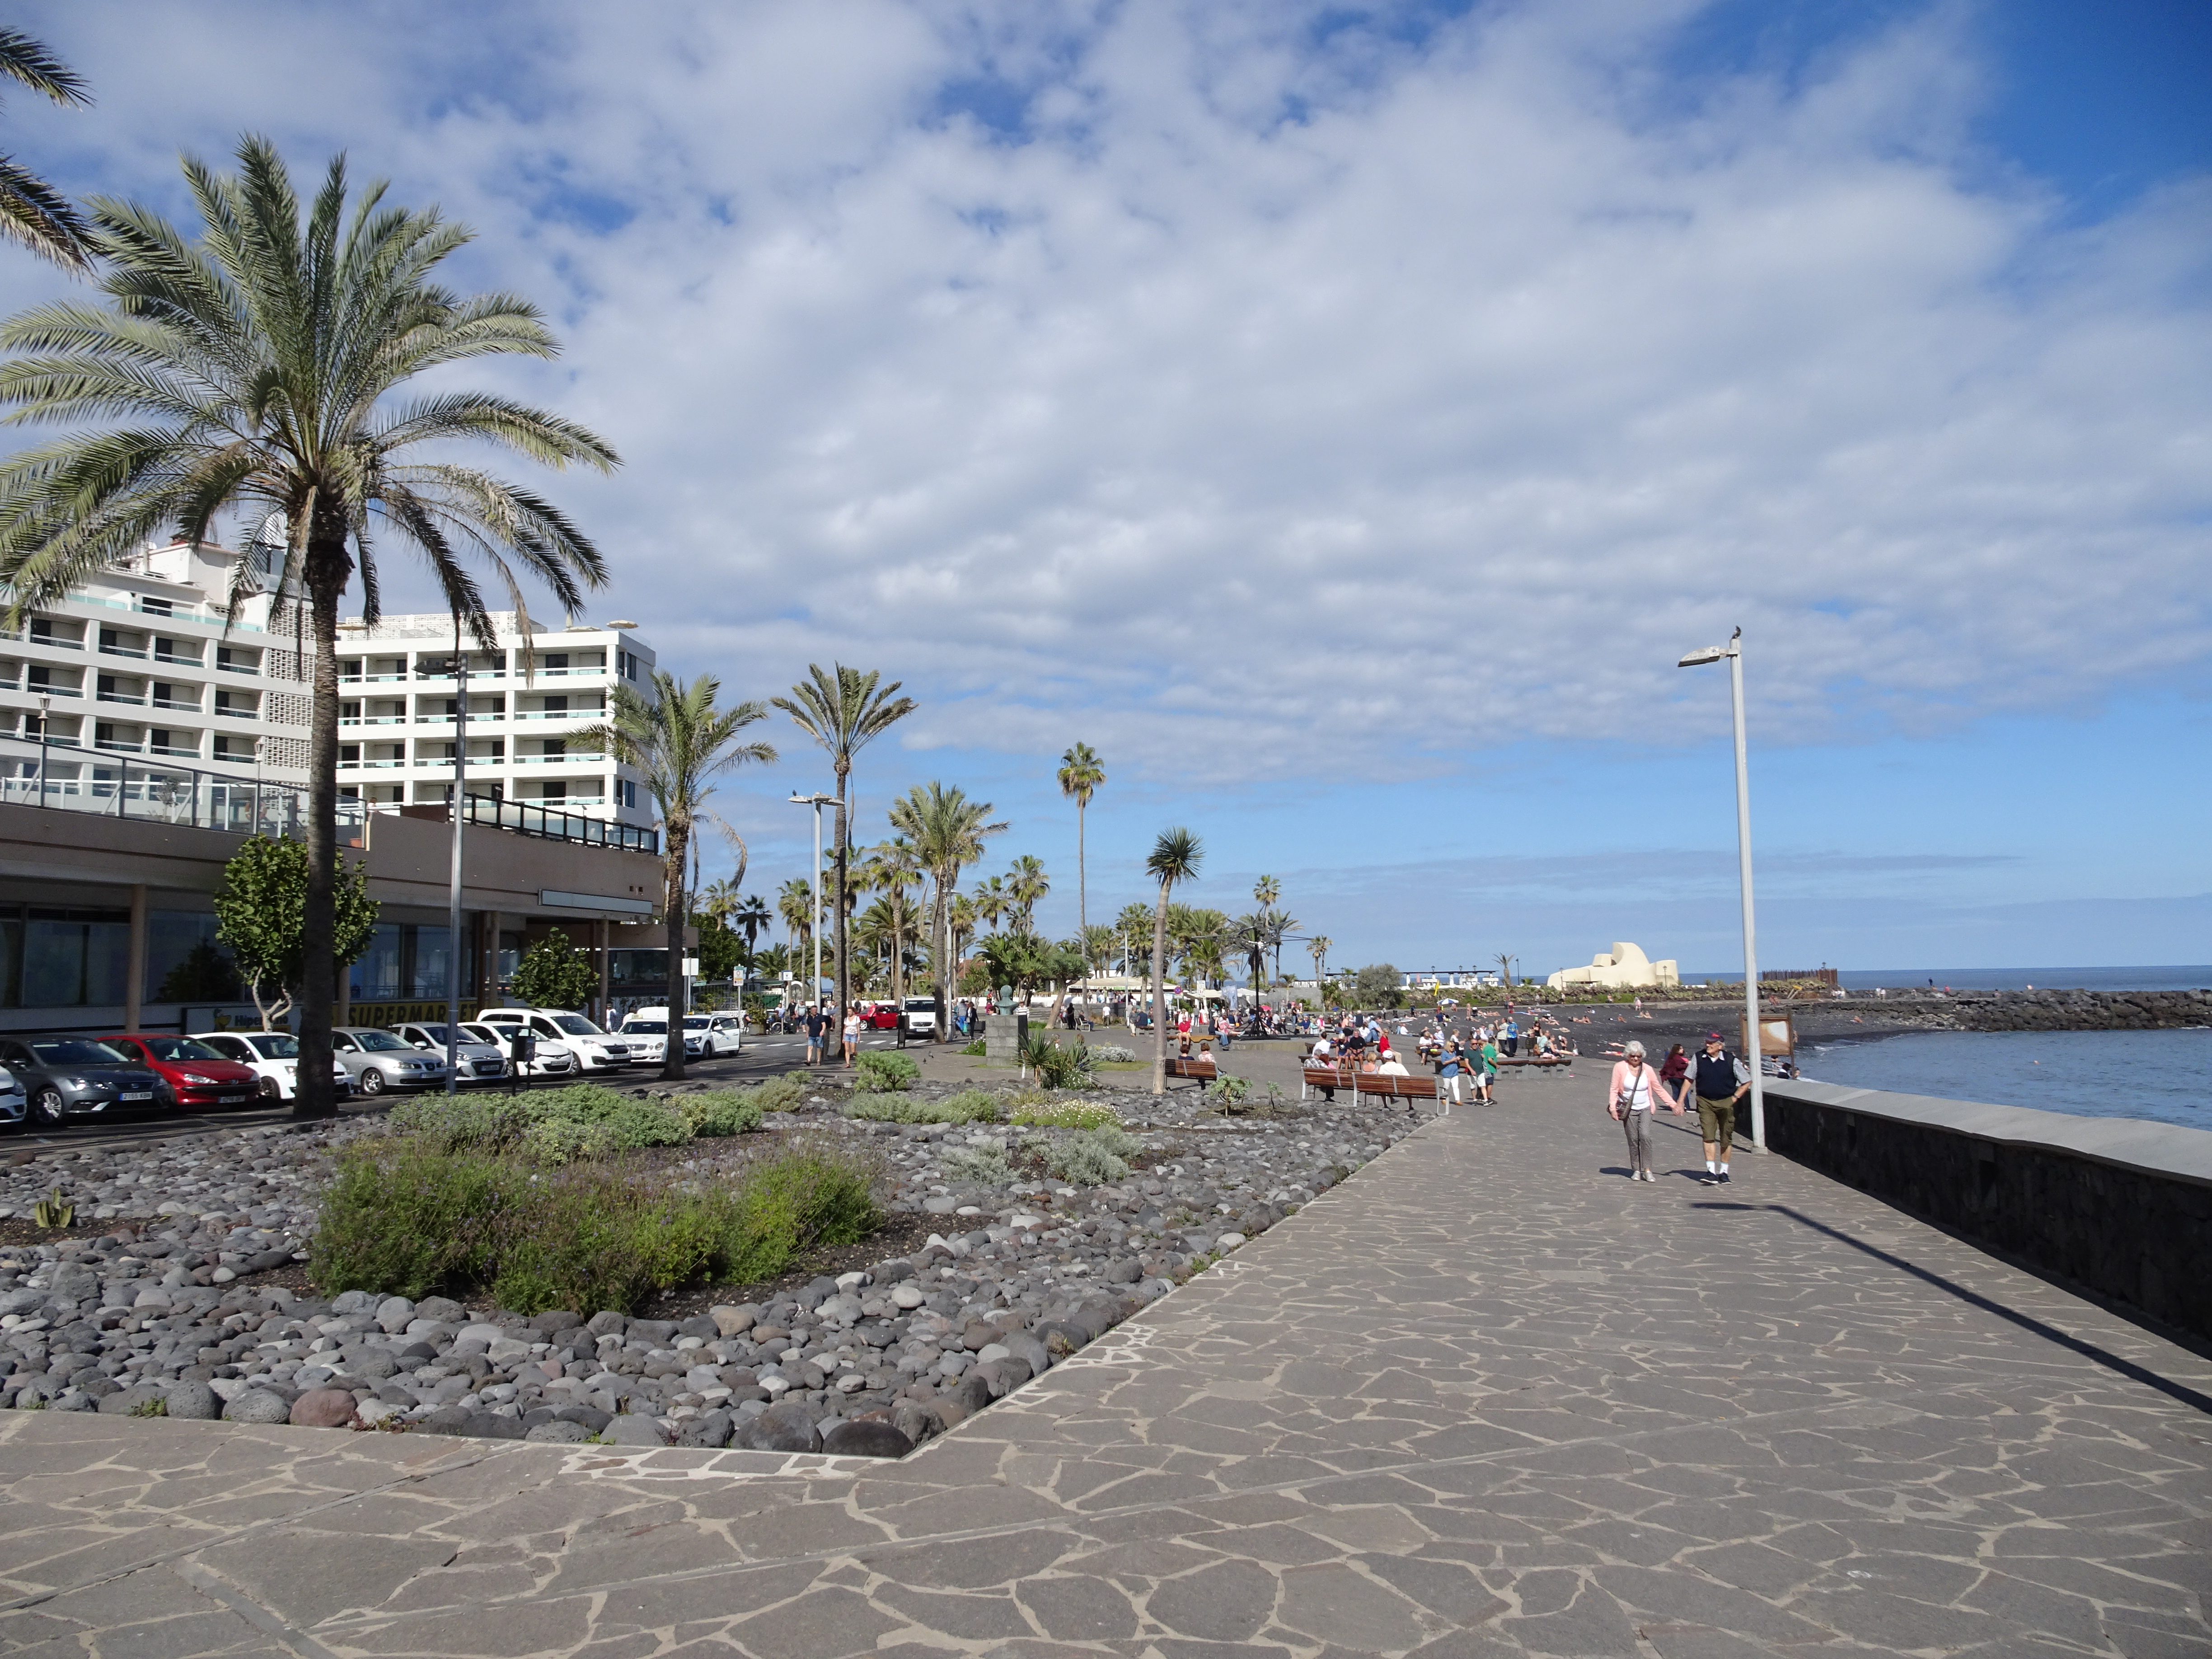 Beaches in North Tenerife